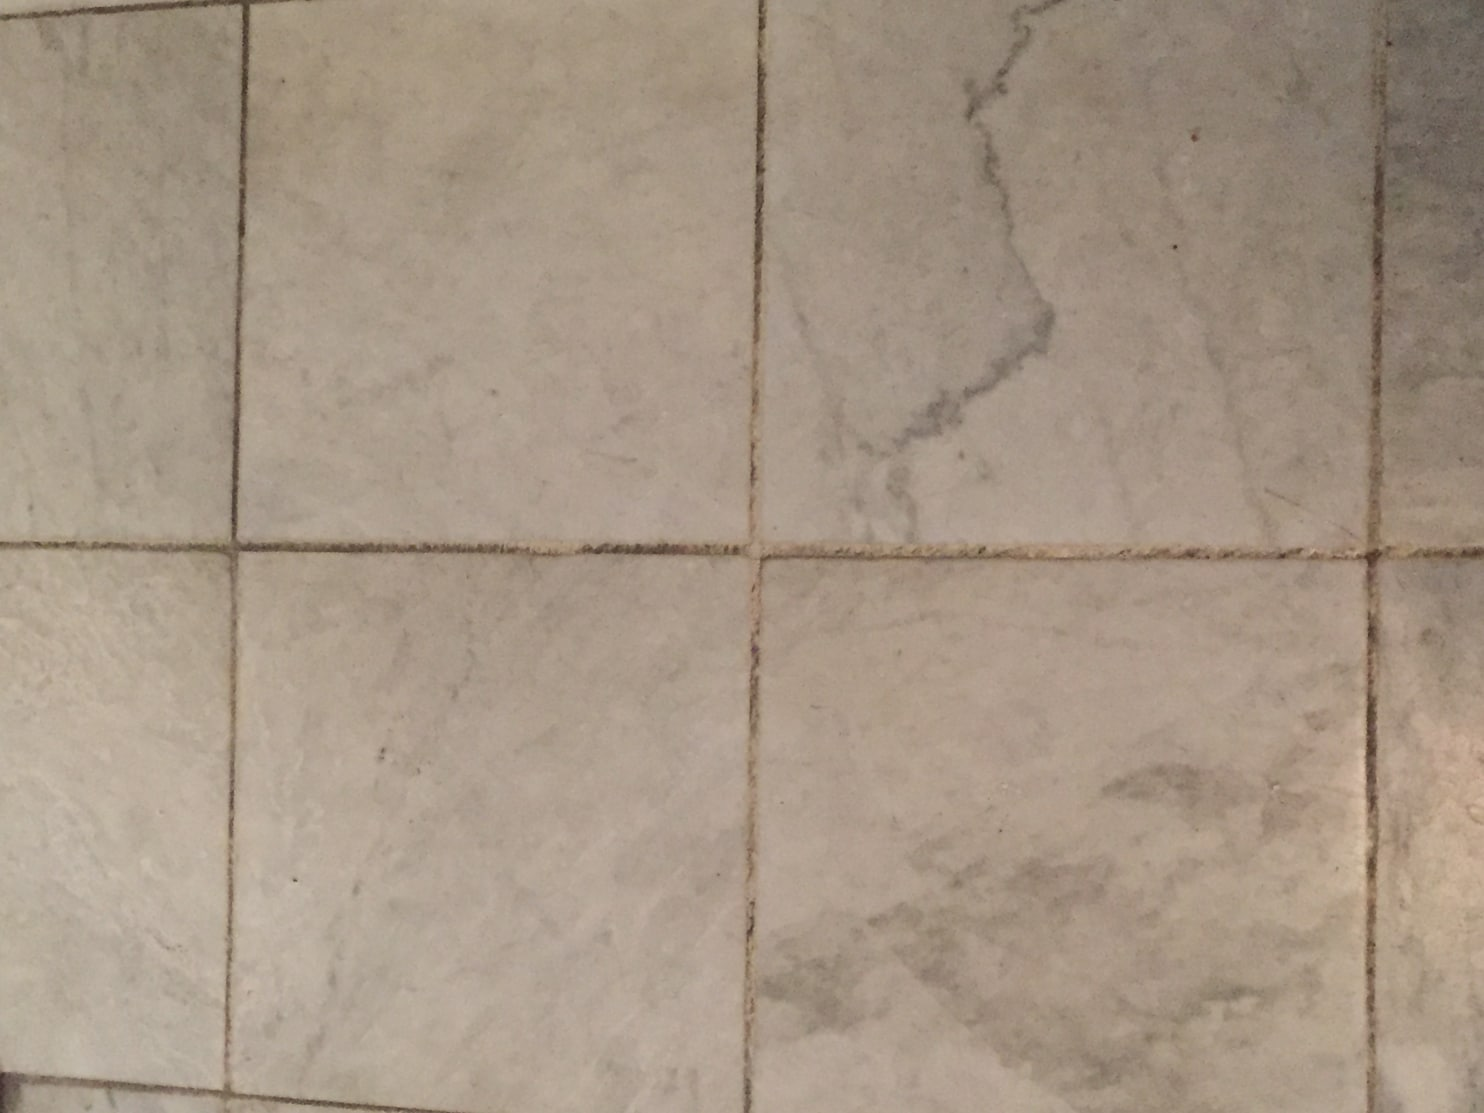 How To Clean Bathroom Tile Grout How To Clean Old Dirty Grout Without Damaging Marble Tiles The